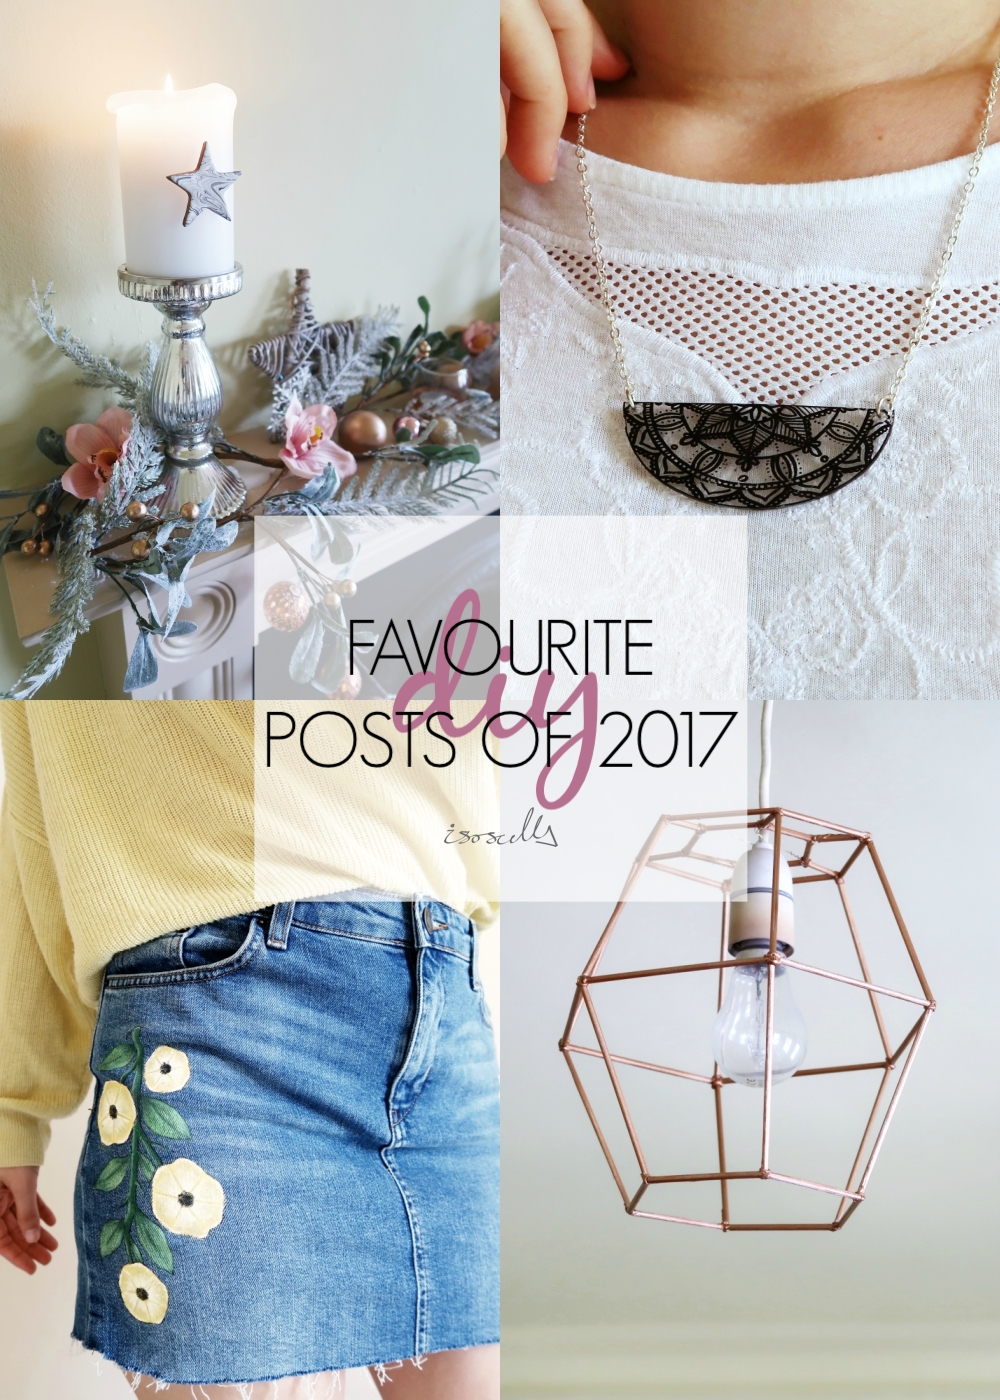 DIY Favourite Projects of 2017 by Isoscella